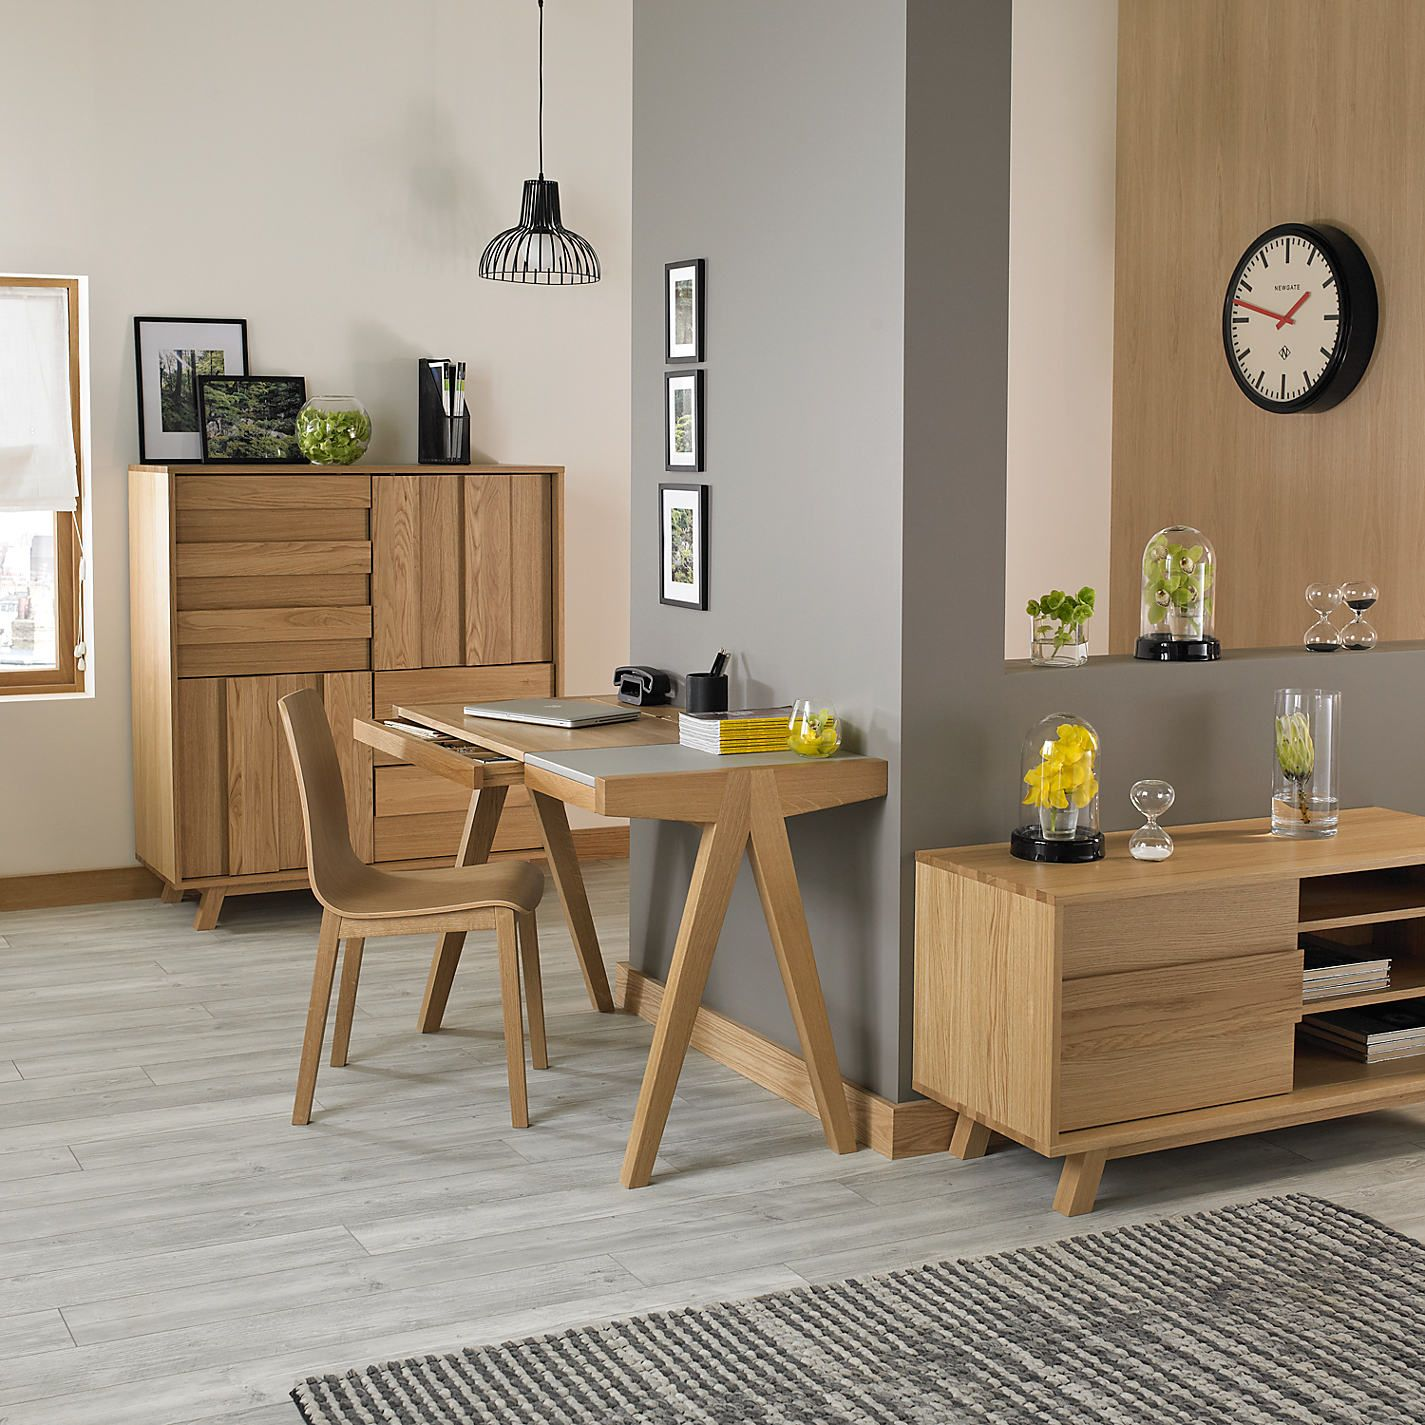 grey wood flooring and oak furniture - Google Search